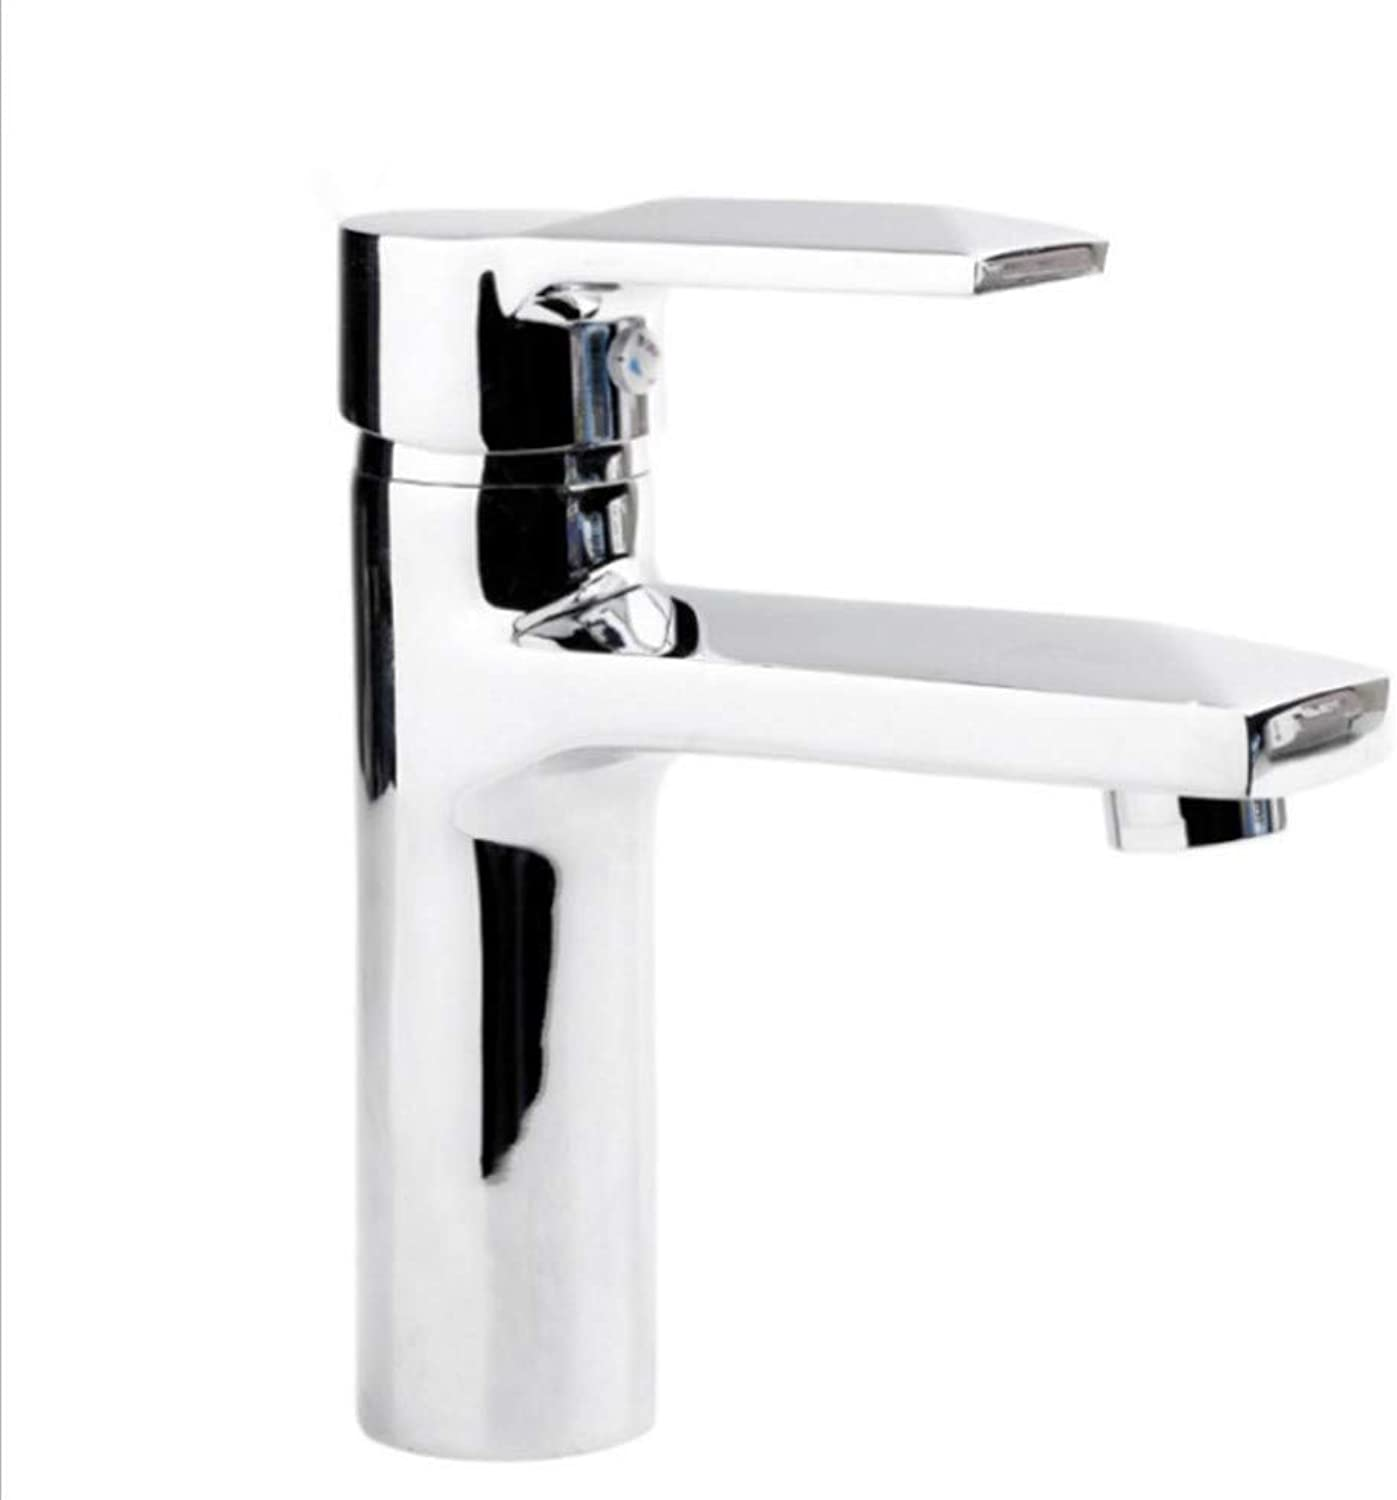 Basin Taps Swivel Spout Faucet Brass Diamond Single Hole Bathroom Washbasin Washbasin Faucet Hot and Cold Mixing Faucet